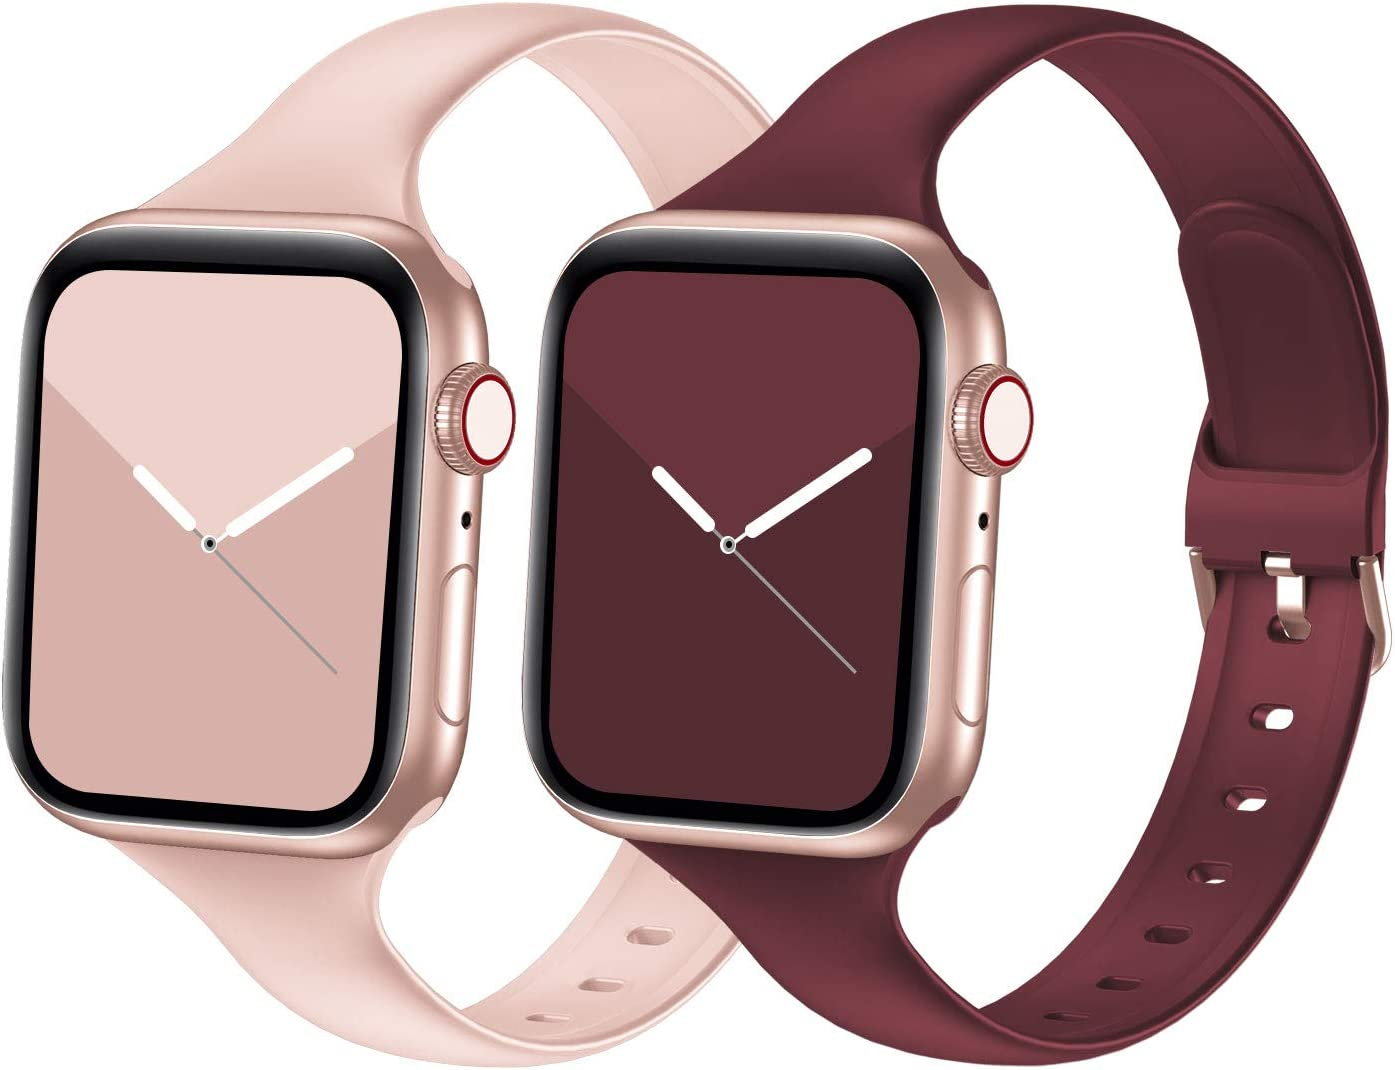 Seizehe Compatible with Apple Watch Band 38MM 40MM Series 3 Series 5, Silicone Slim Thin Narrow iWatch Bands 38MM 40MM Womens Compatible for Apple Watch SE Series 6 5 4 3 2 1